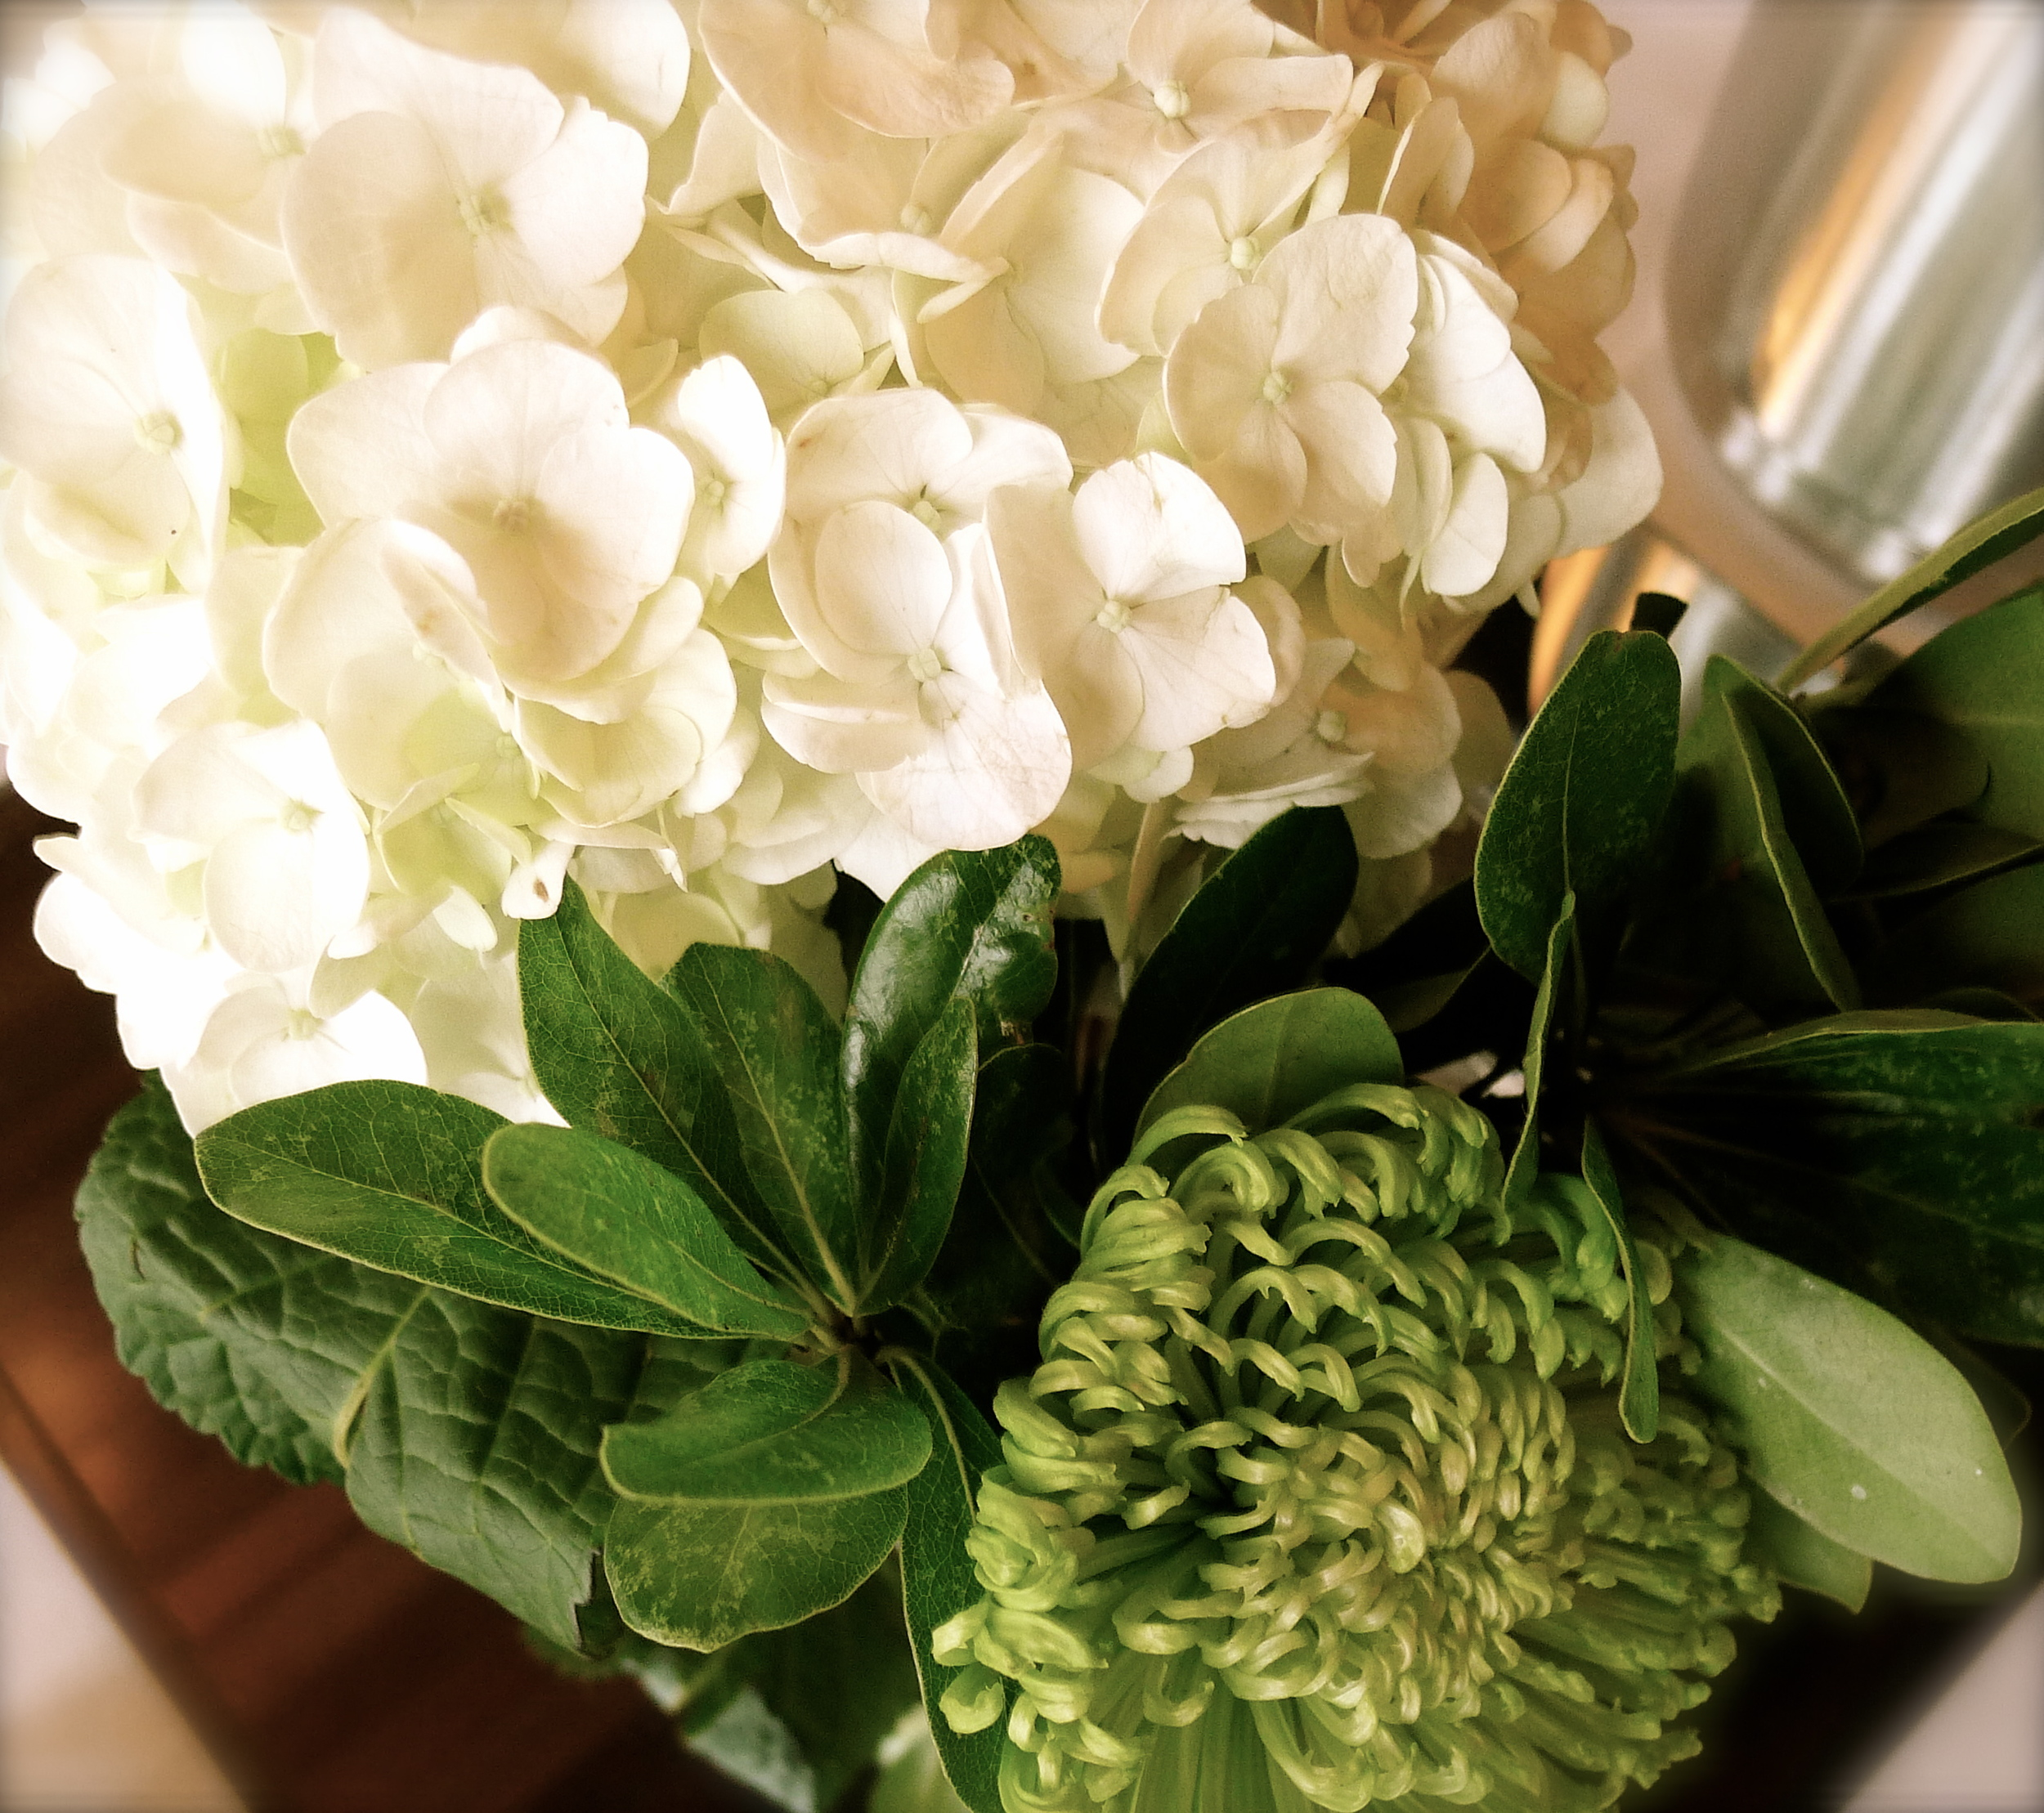 HYDRANGEAS ARE MY ABSOLUTE FAVORITE AND THESE ARE FROM MARI'S GARDEN. SO PRETTY.